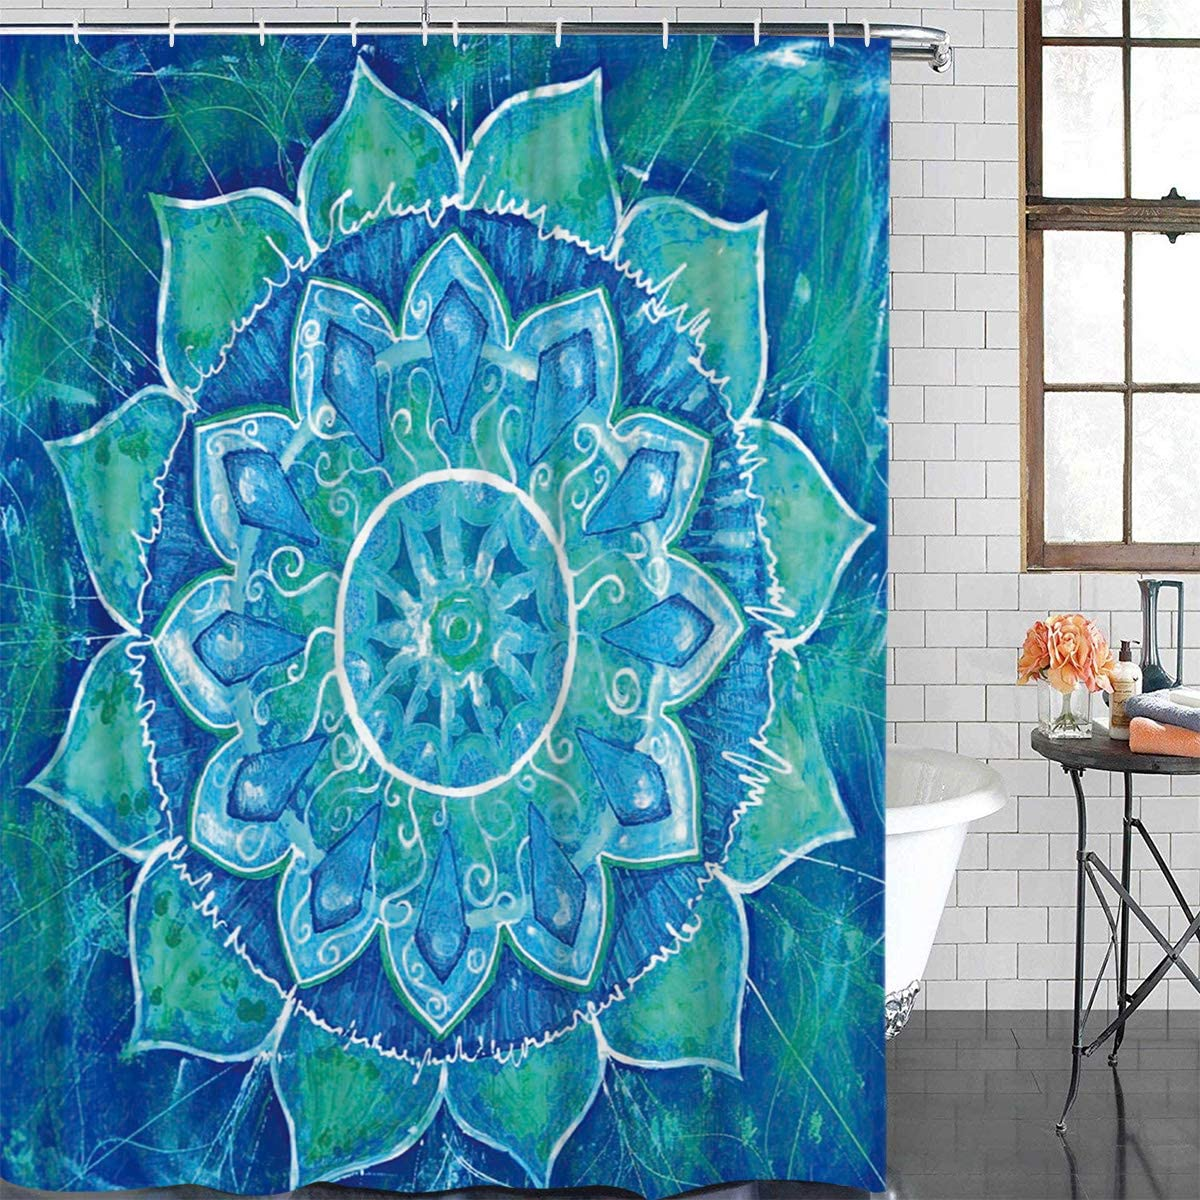 Hippie Shower Curtain Mandala Floral Boho Print for Bathroom